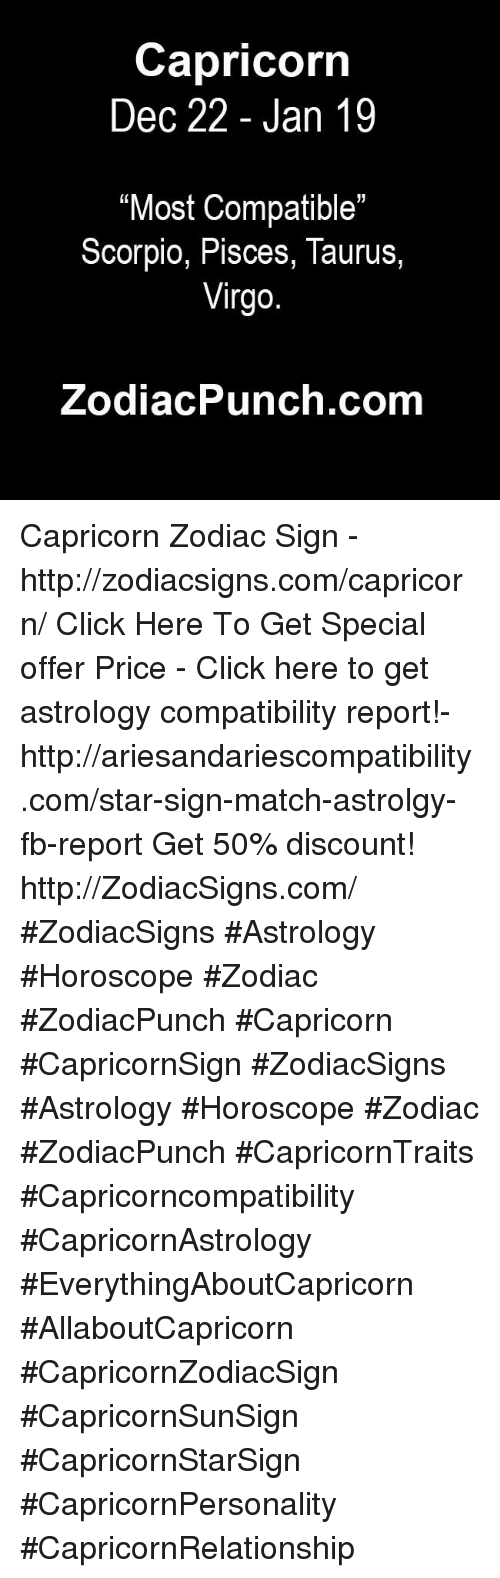 Which star signs are compatible with scorpio